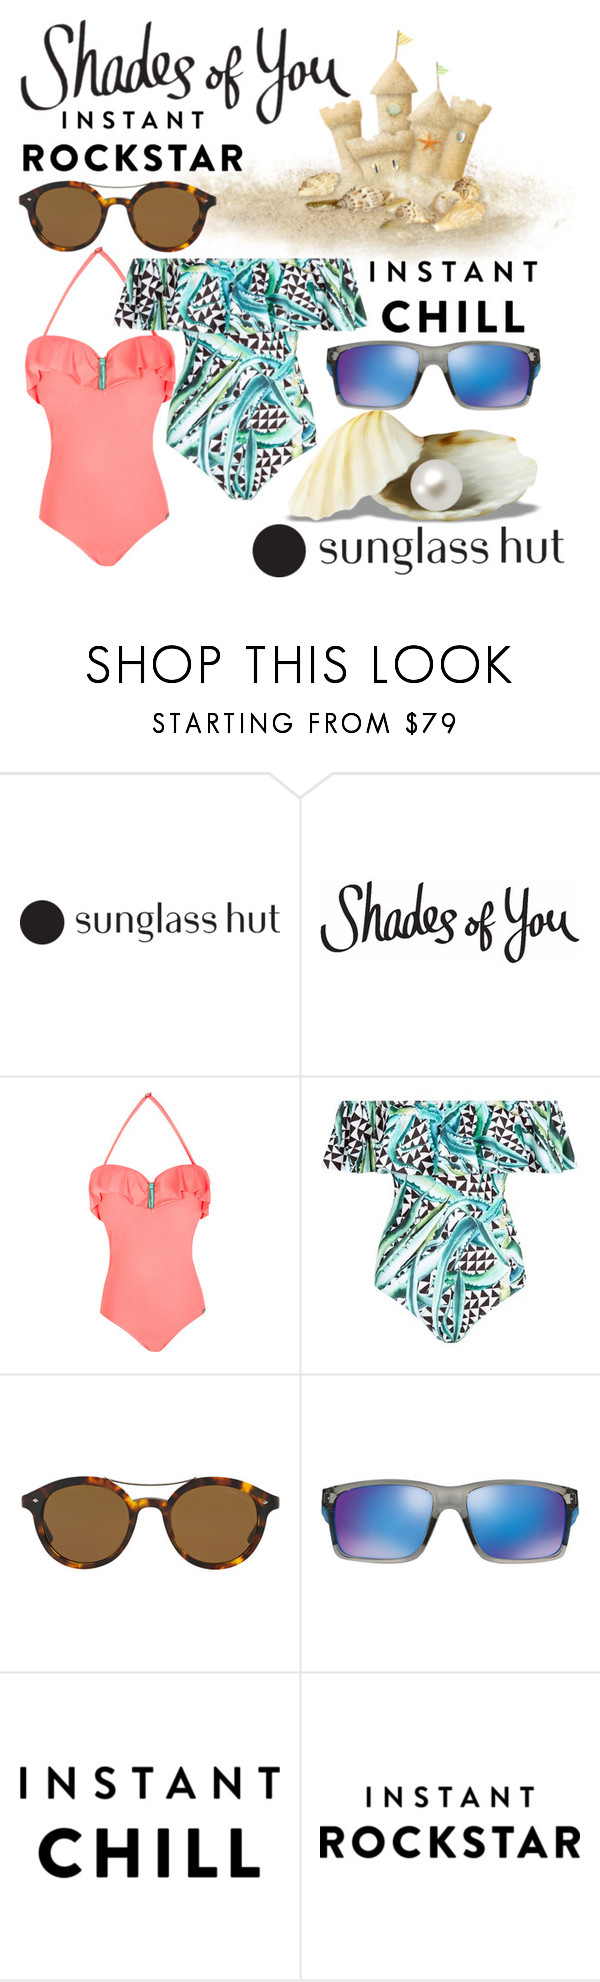 """""""Shades of You: Sunglass Hut Contest Entry"""" by ffendi ❤ liked on Polyvore featuring Mara Hoffman, Giorgio Armani, Oakley and shadesofyou"""